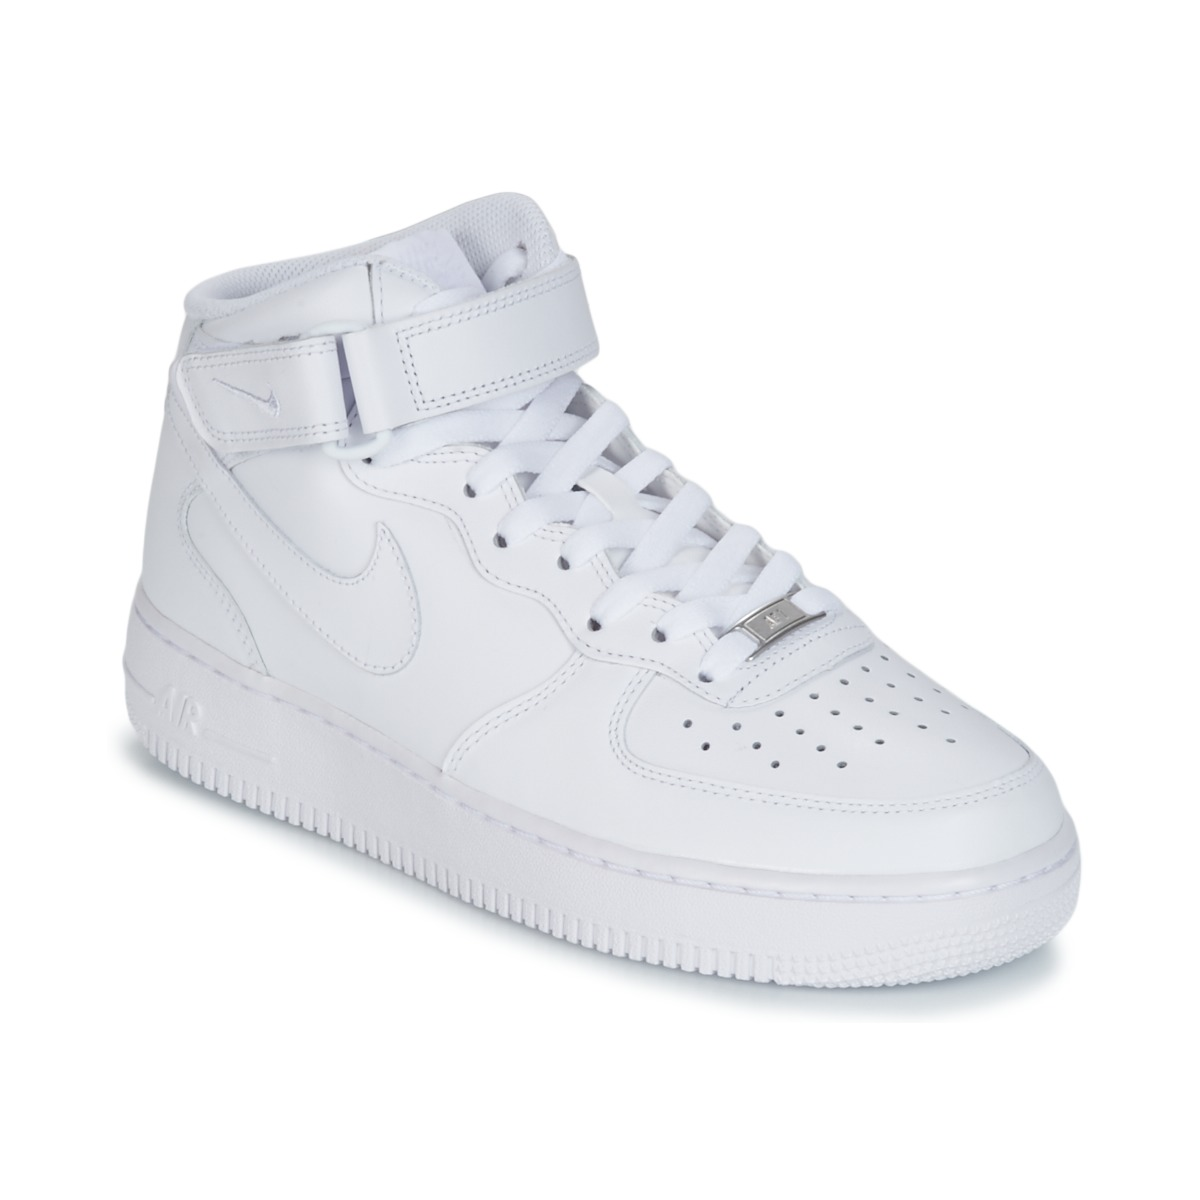 low priced fd25a 4b46b Chaussures Homme Baskets montantes Nike AIR FORCE 1 MID 07 LEATHER Blanc